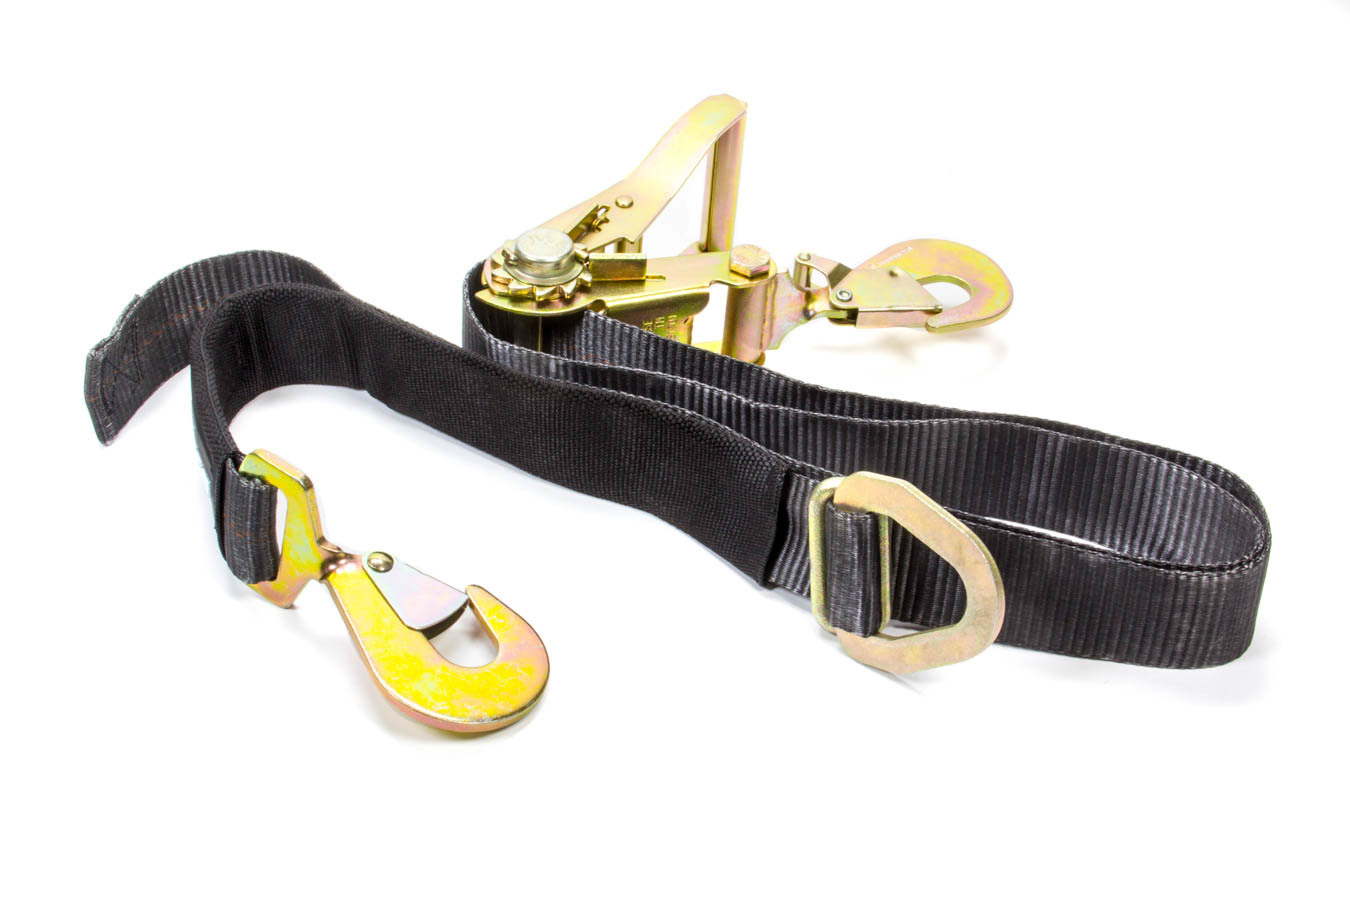 Macs Custom Tie Downs 121409 Ratchet Tie Down, 2 in Wide, 8 ft Long, 10000 lb Capacity, Twisted Snap Hook, Built-in Axle Strap, Polyester, Black, Each